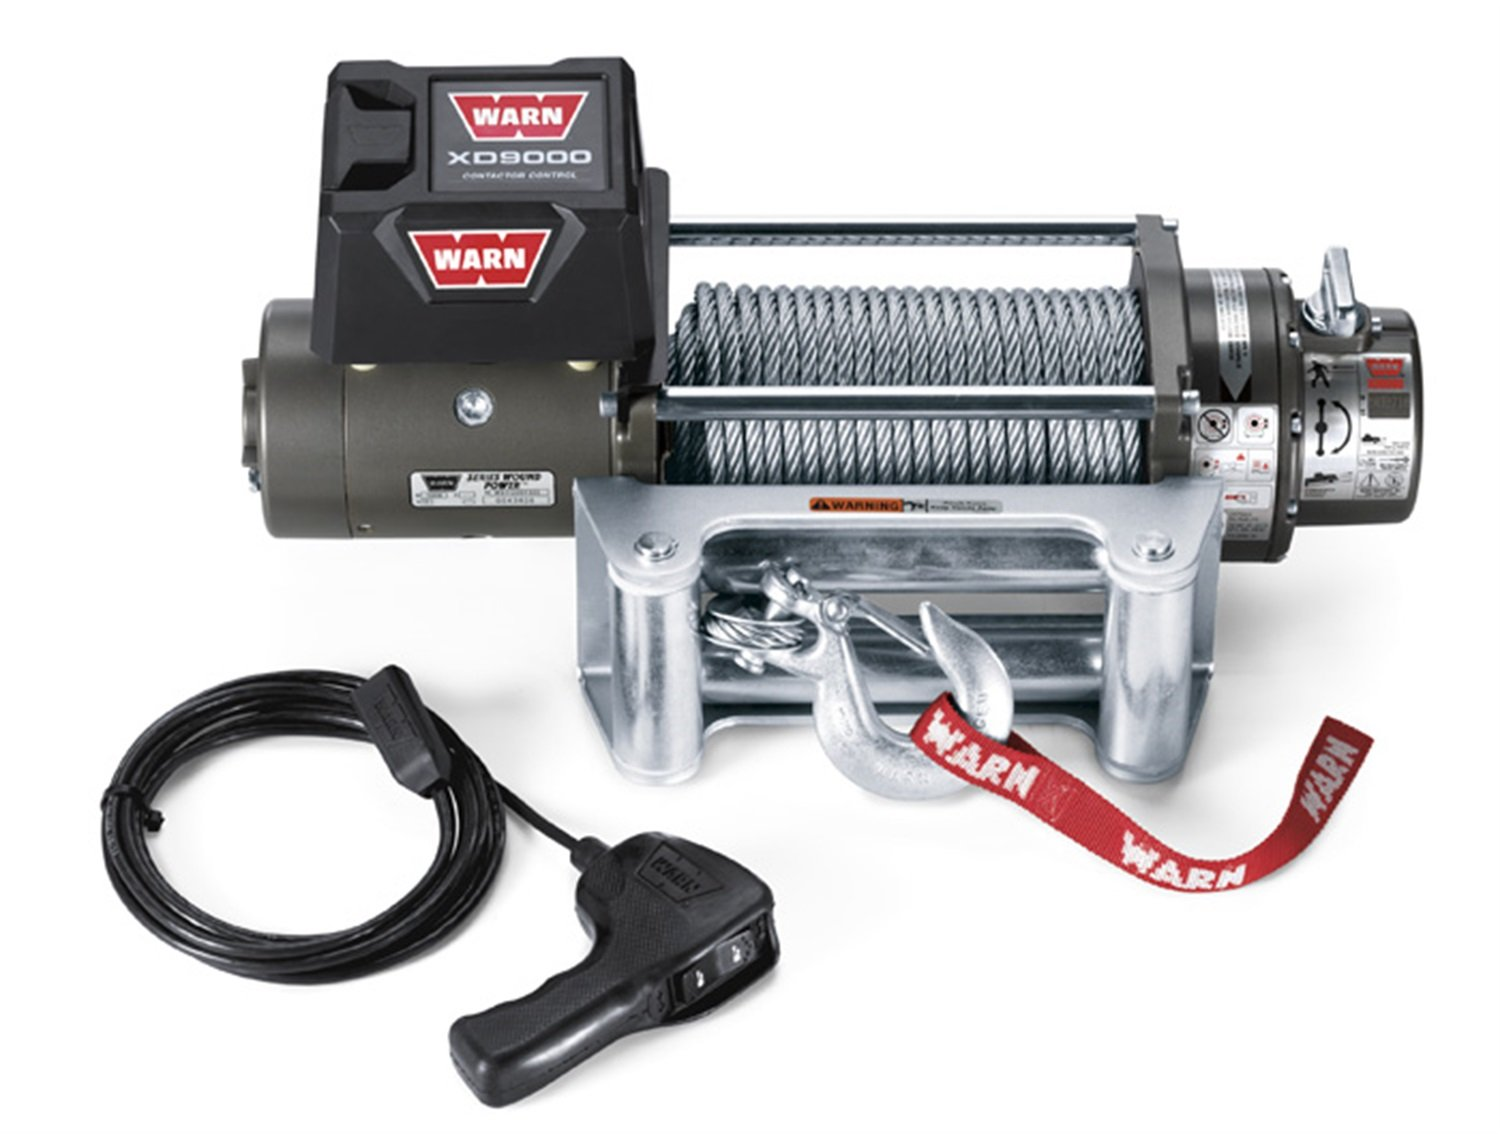 Warn 37441 Xd9000i 9000 Lb Multi Mount Winch Kit Automotive Wiring Diagram Free Picture